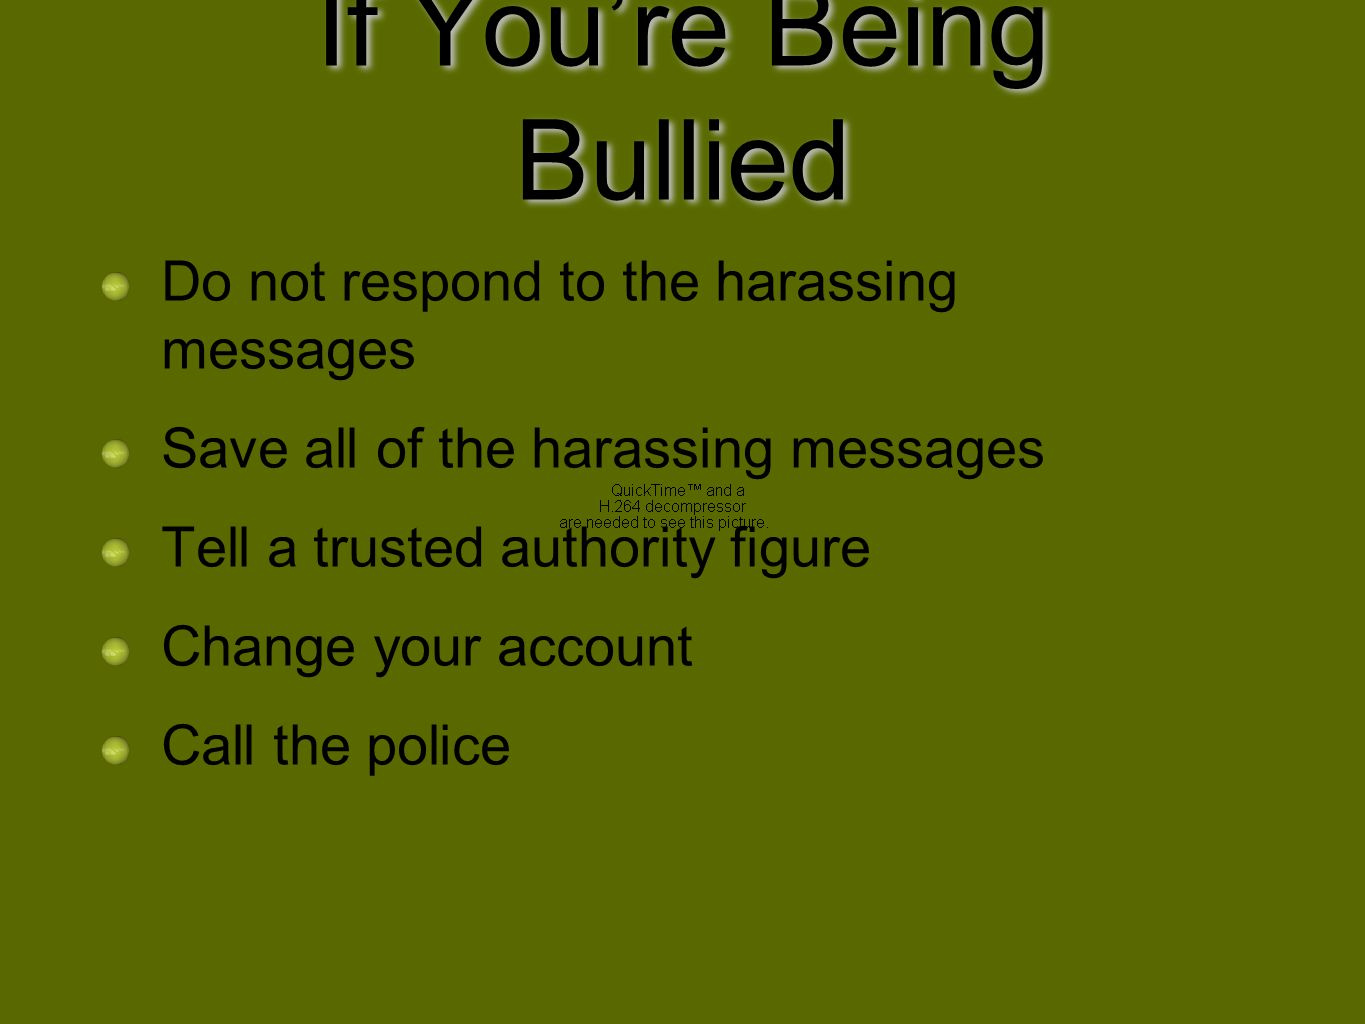 If Youre Being Bullied Do not respond to the harassing messages Save all of the harassing messages Tell a trusted authority figure Change your account